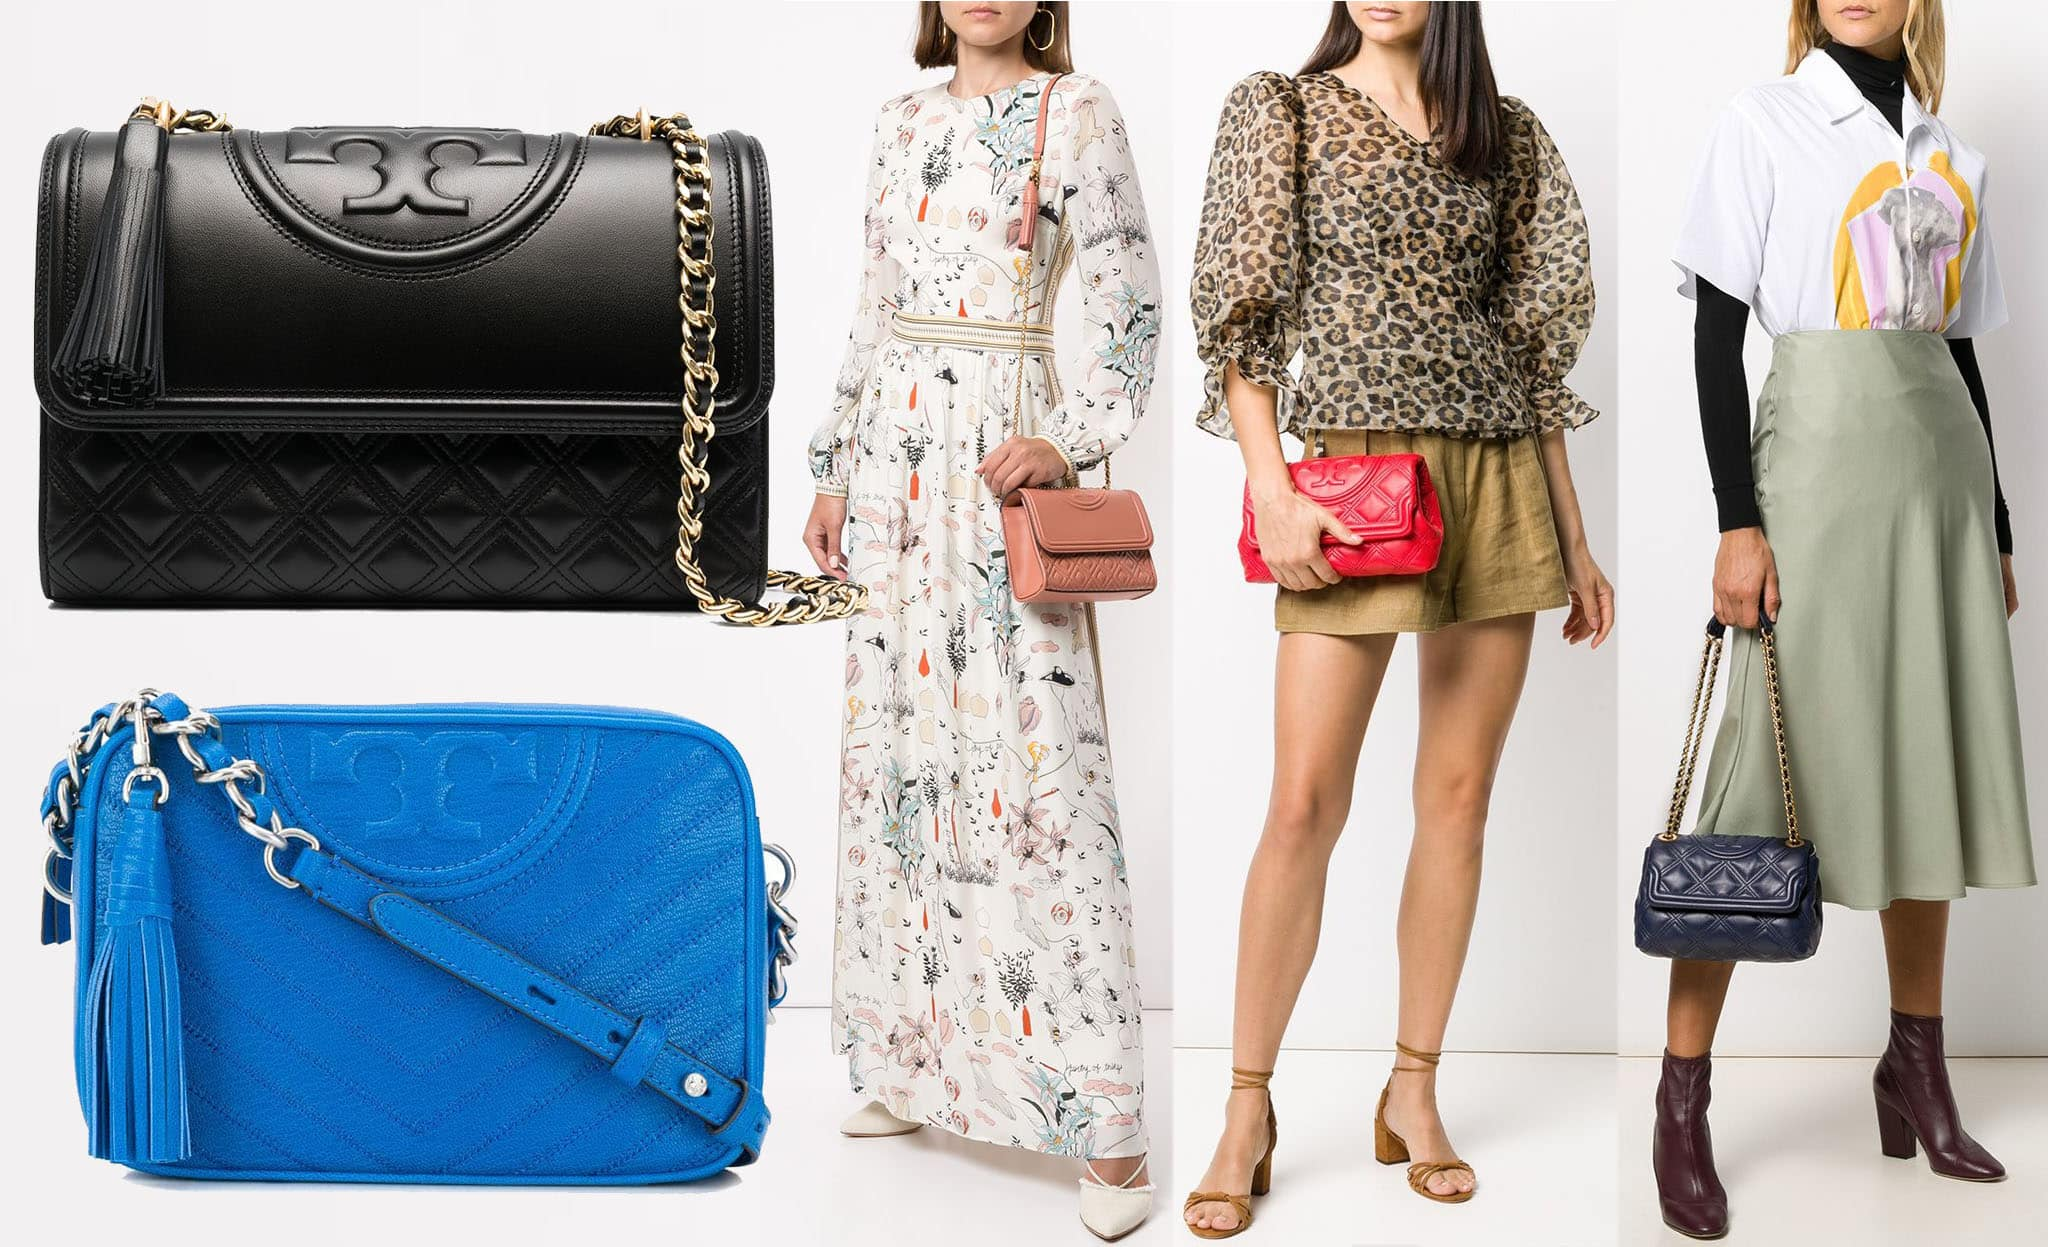 Embossed bombé double T logo and diamond quilting define the Tory Burch Fleming bag